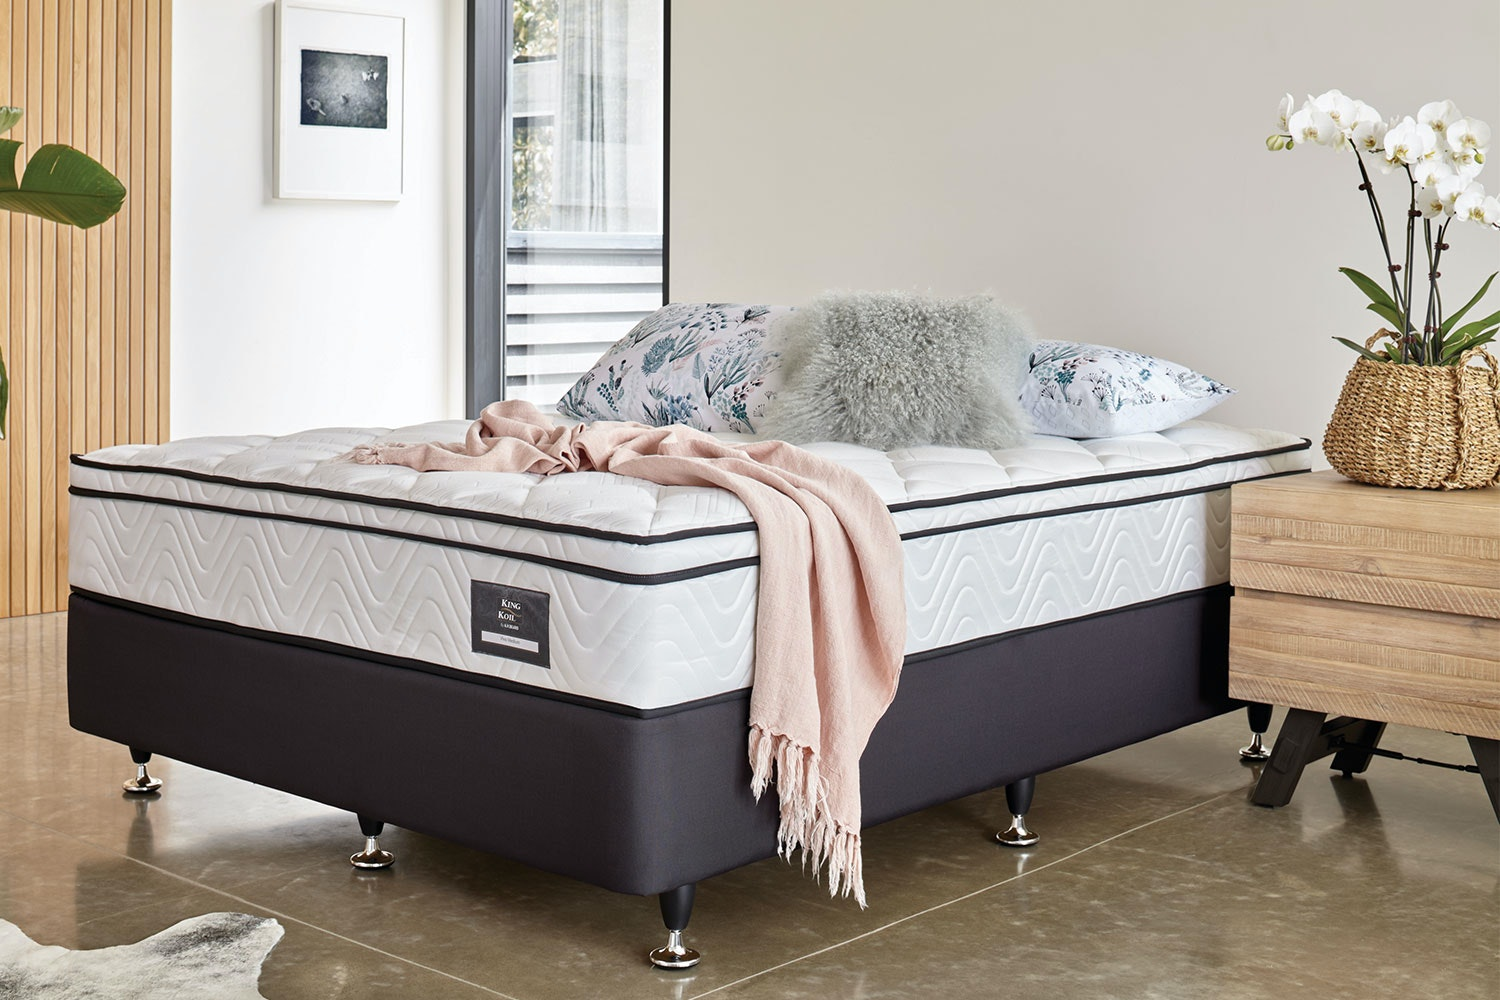 mattress and base find a bed base harvey norman new zealand rh harveynorman co nz